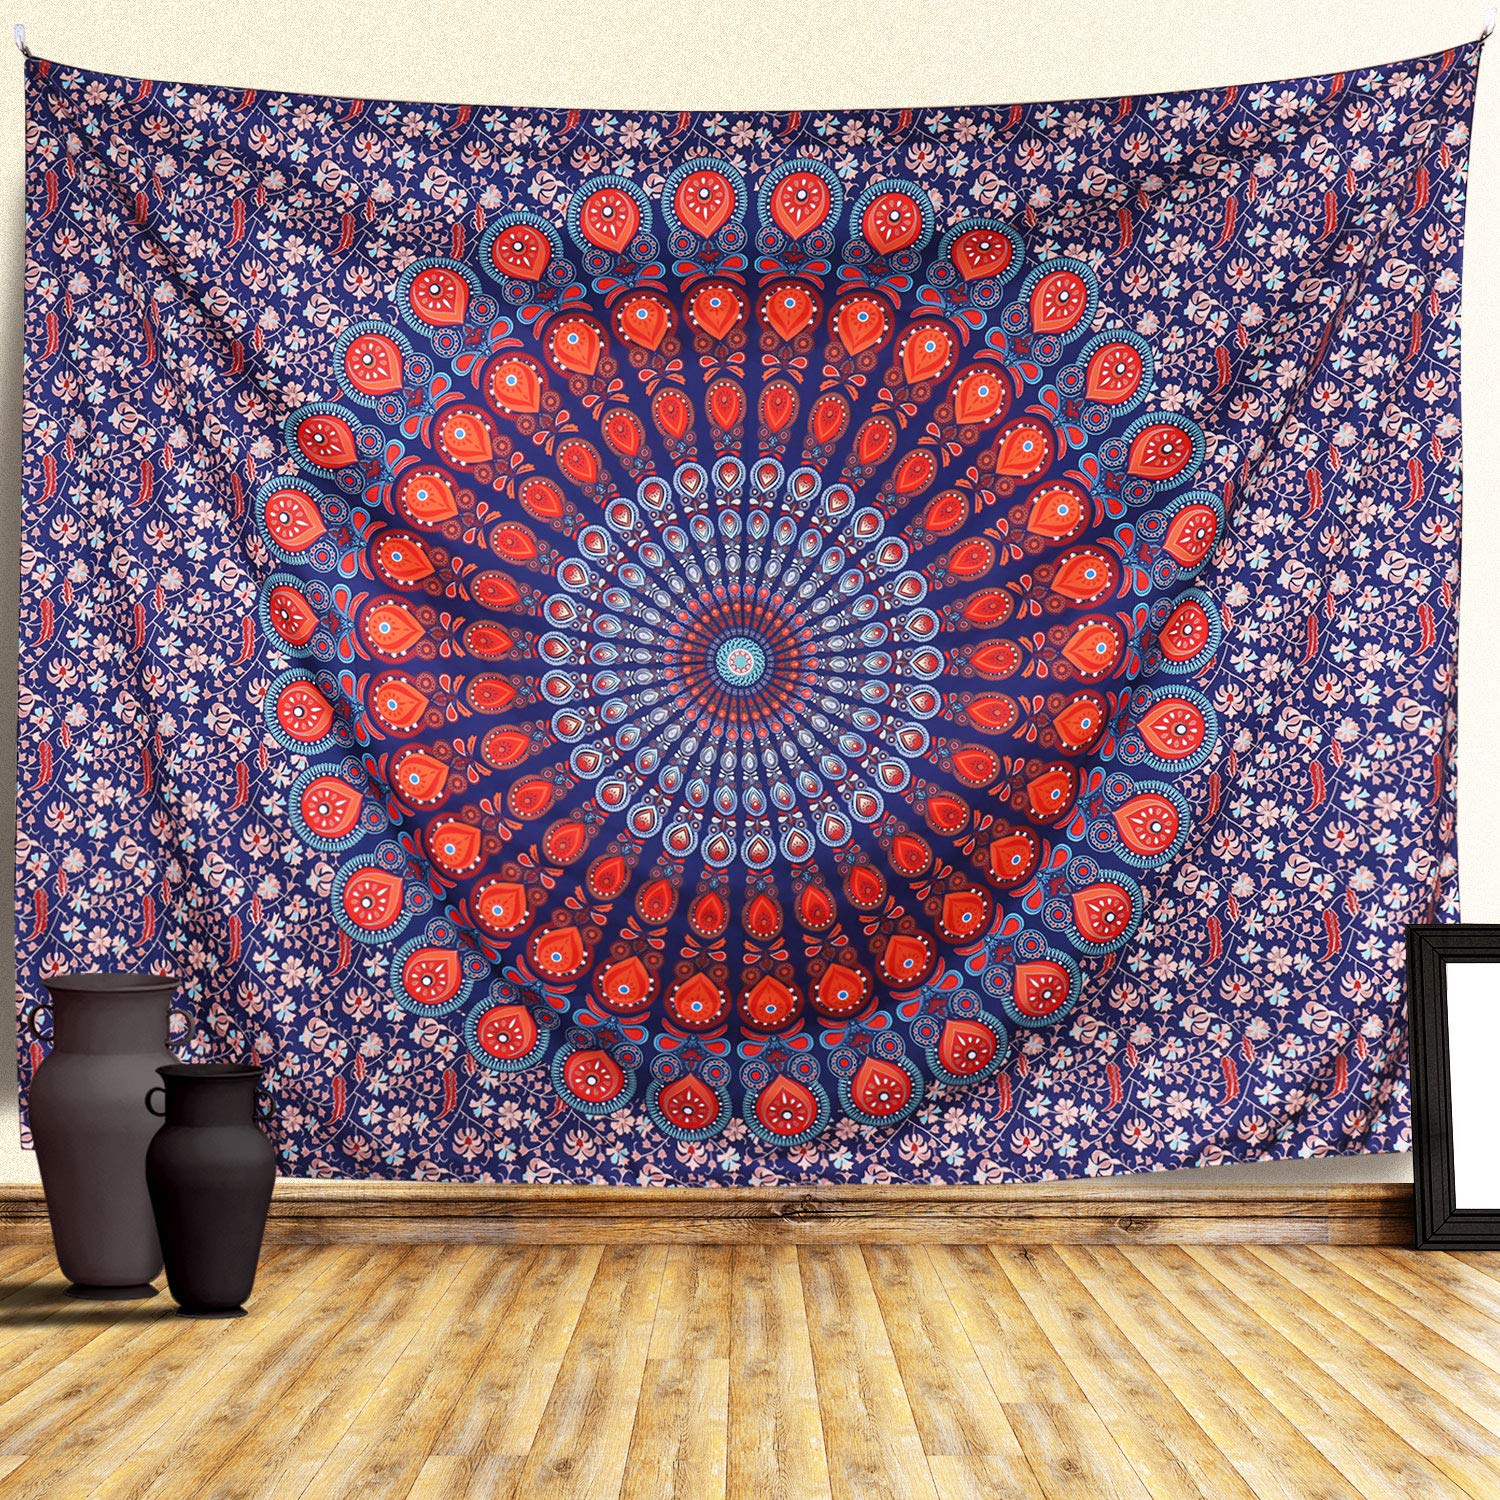 Tapestries Zamat Mandala Tapestry Hd Print Indian Hippie Wall Tapestry Bohemian Tapestry Wall Hanging With Hangers And Nails Floral Wall Blanket For Living Room Bedroom Dorm Room Decor Home Kitchen Novalaw Unl Pt